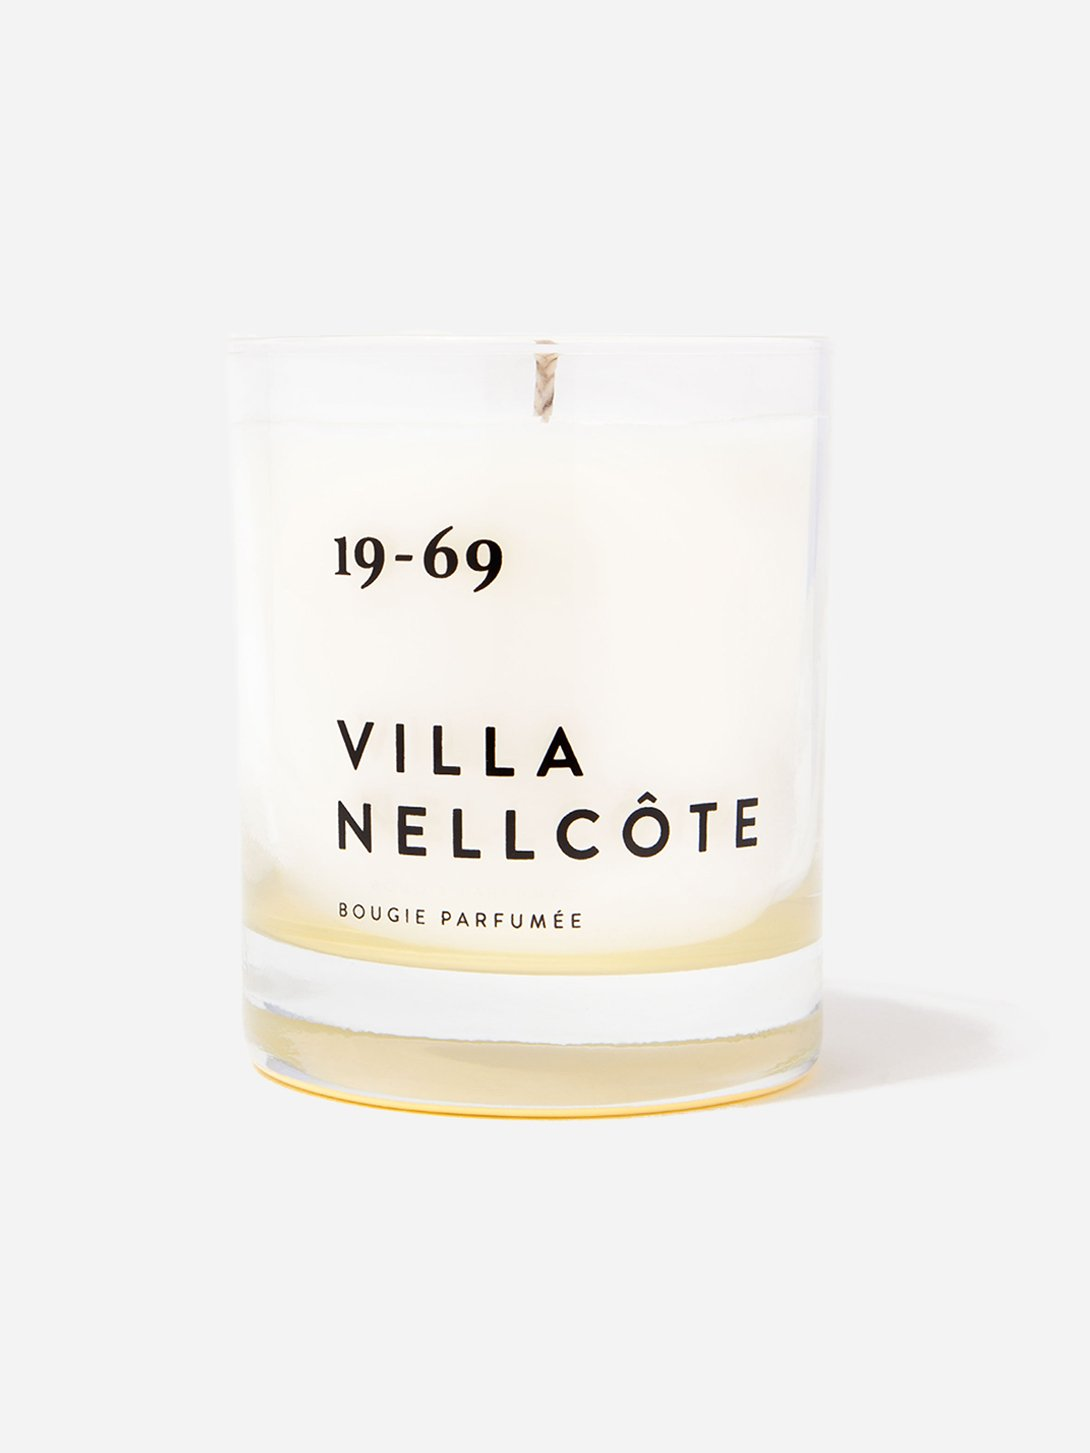 VILLA NELLCOTE candle for men and women unisex female christ 200ml 19-69